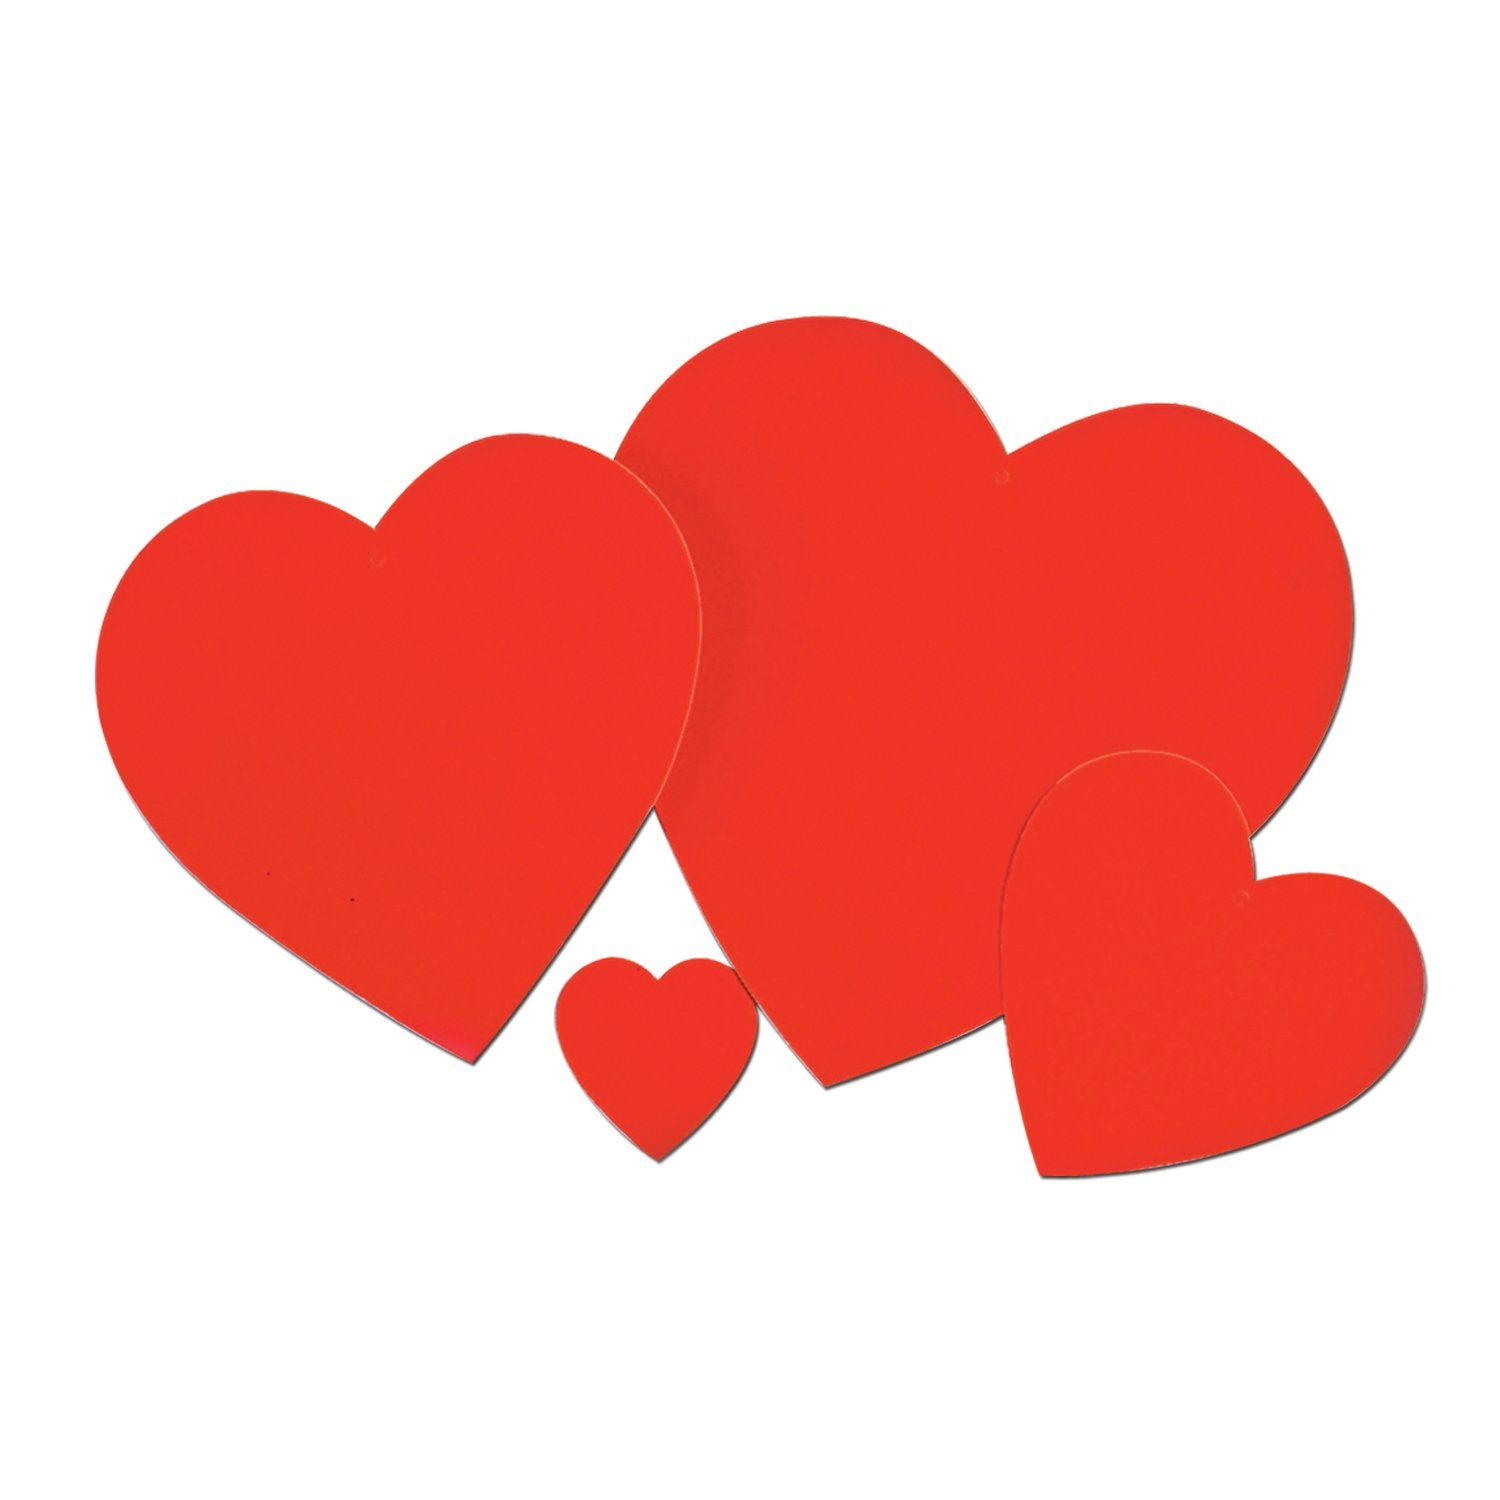 Beistle 77760-12 36-Piece RedPrinted Heart Cutout, 12-Inch by Beistle